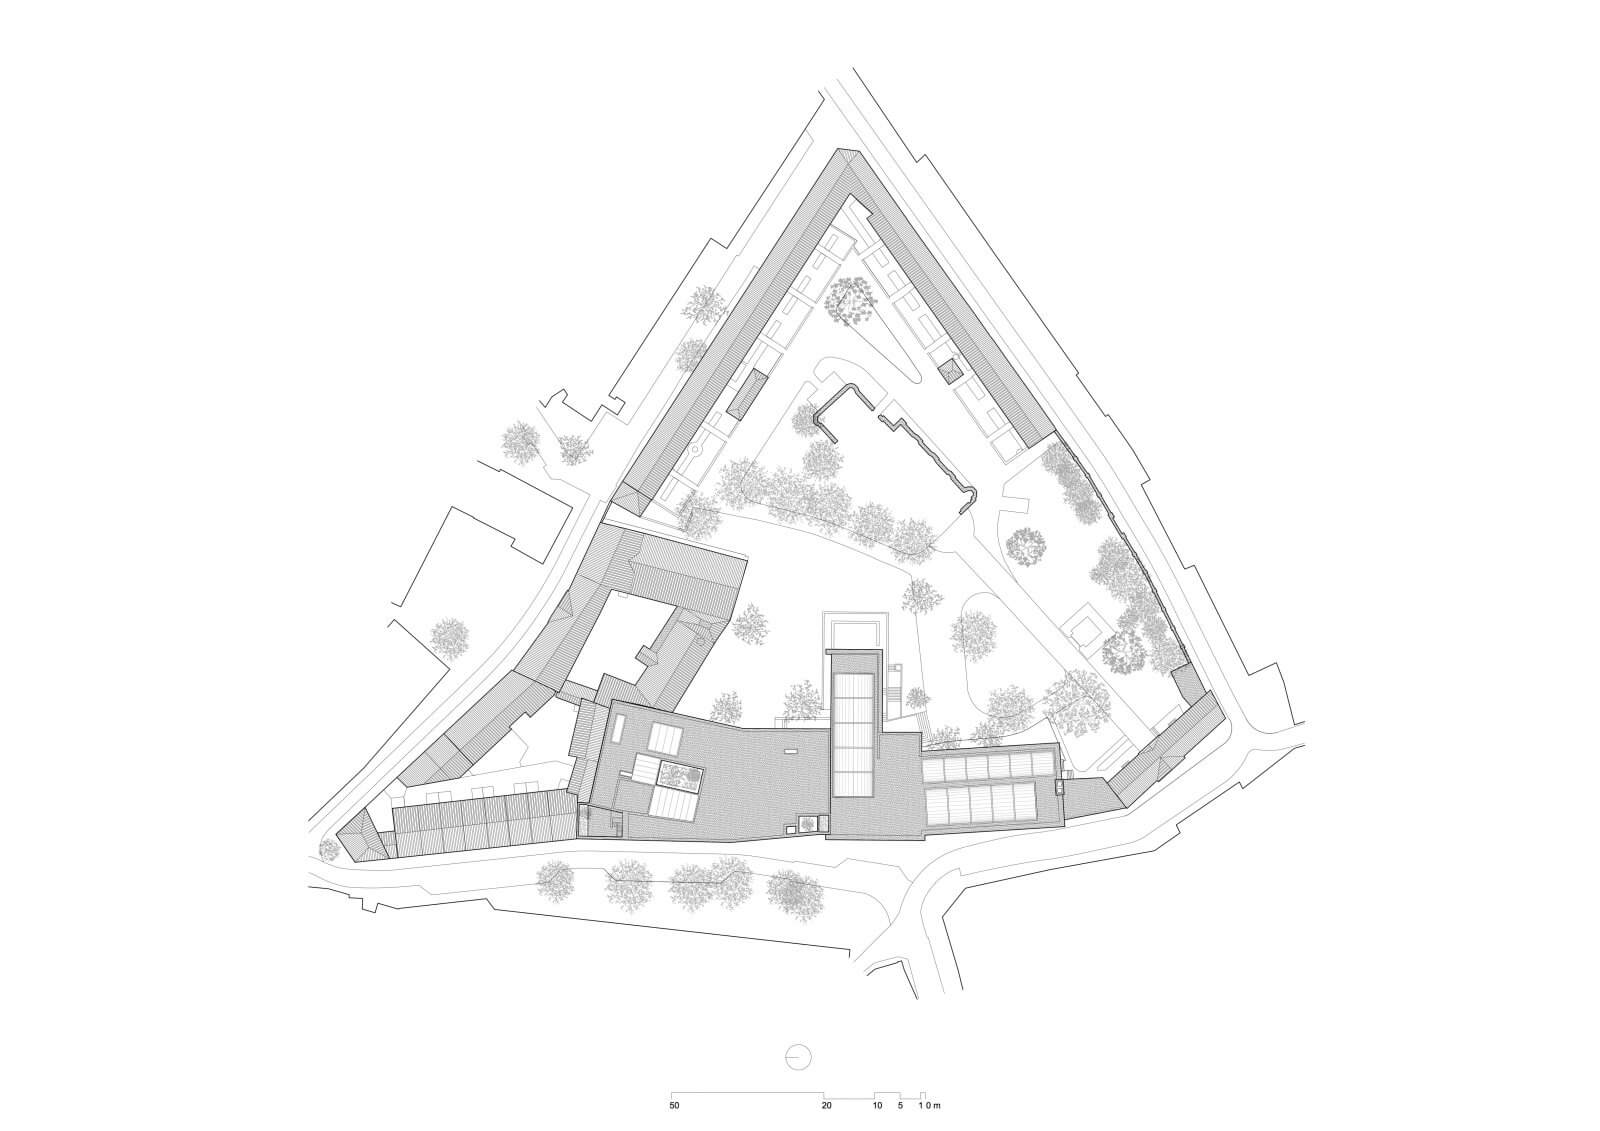 Z33  - 01 Z33 drawing site plan 1.750 A3 33